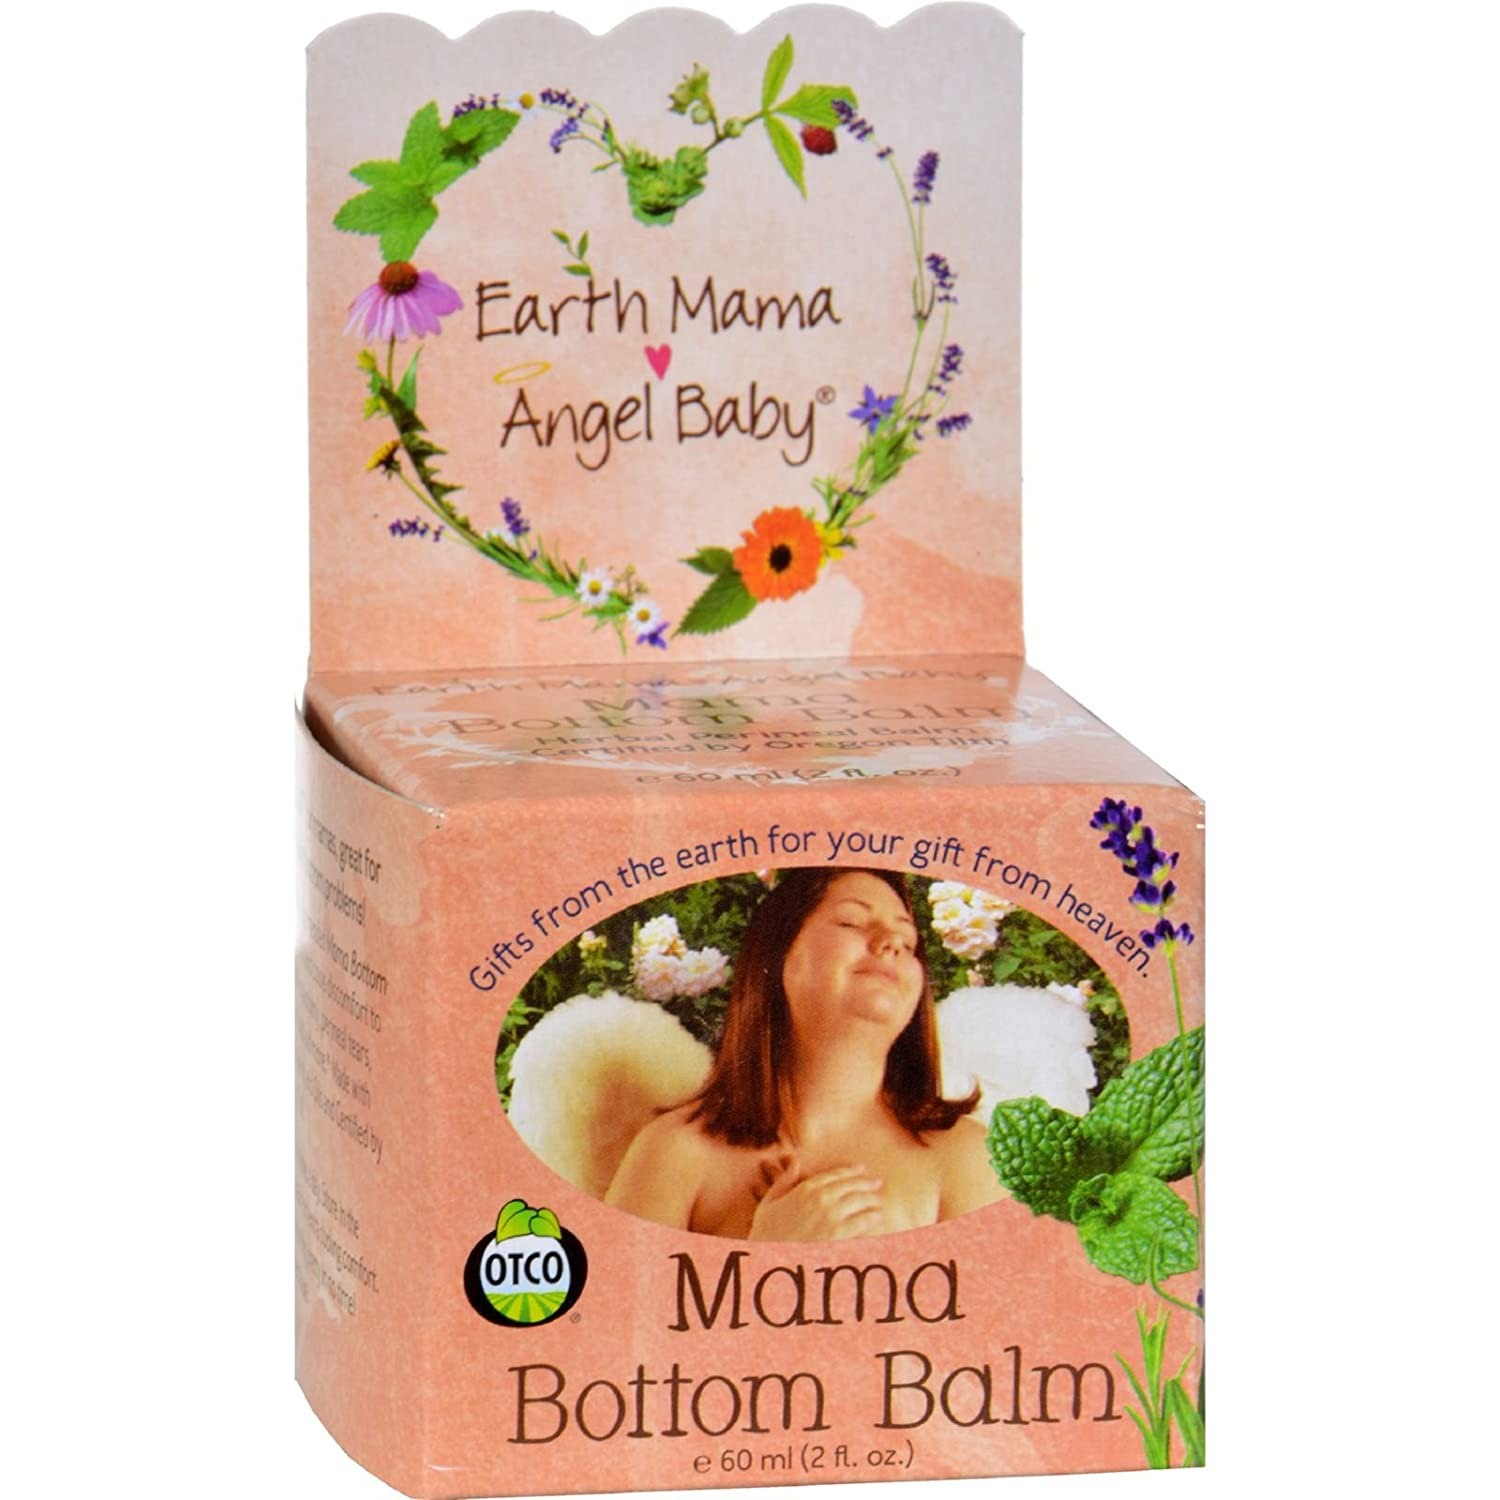 Earth Mama Angel Baby Mama Bottom Balm (2FL oz.)